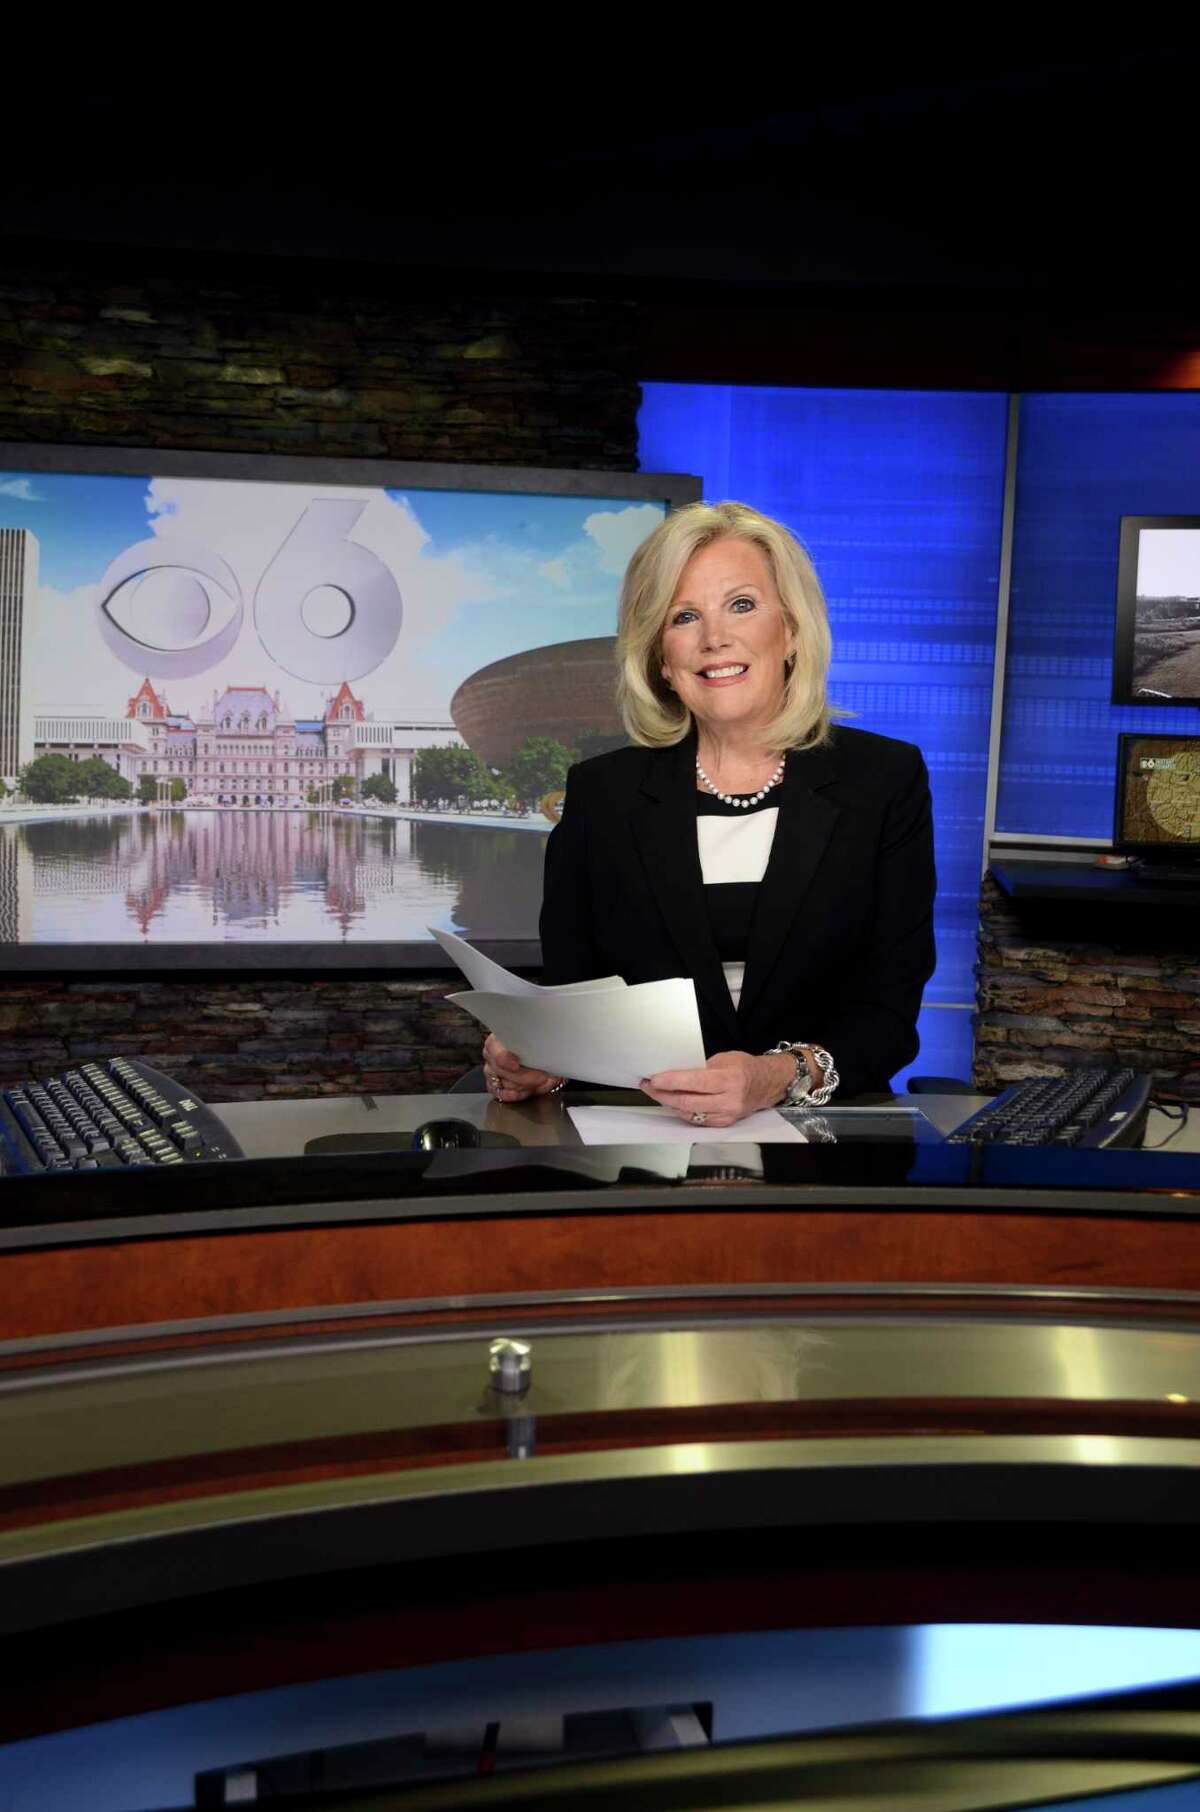 Liz Bishop, News Anchor, WRGB (CBS-6), in the WRGB news studio in Schenectady, NY, on Tuesday, September 26, 2017. (Photo by Colleen Ingerto / Times Union)